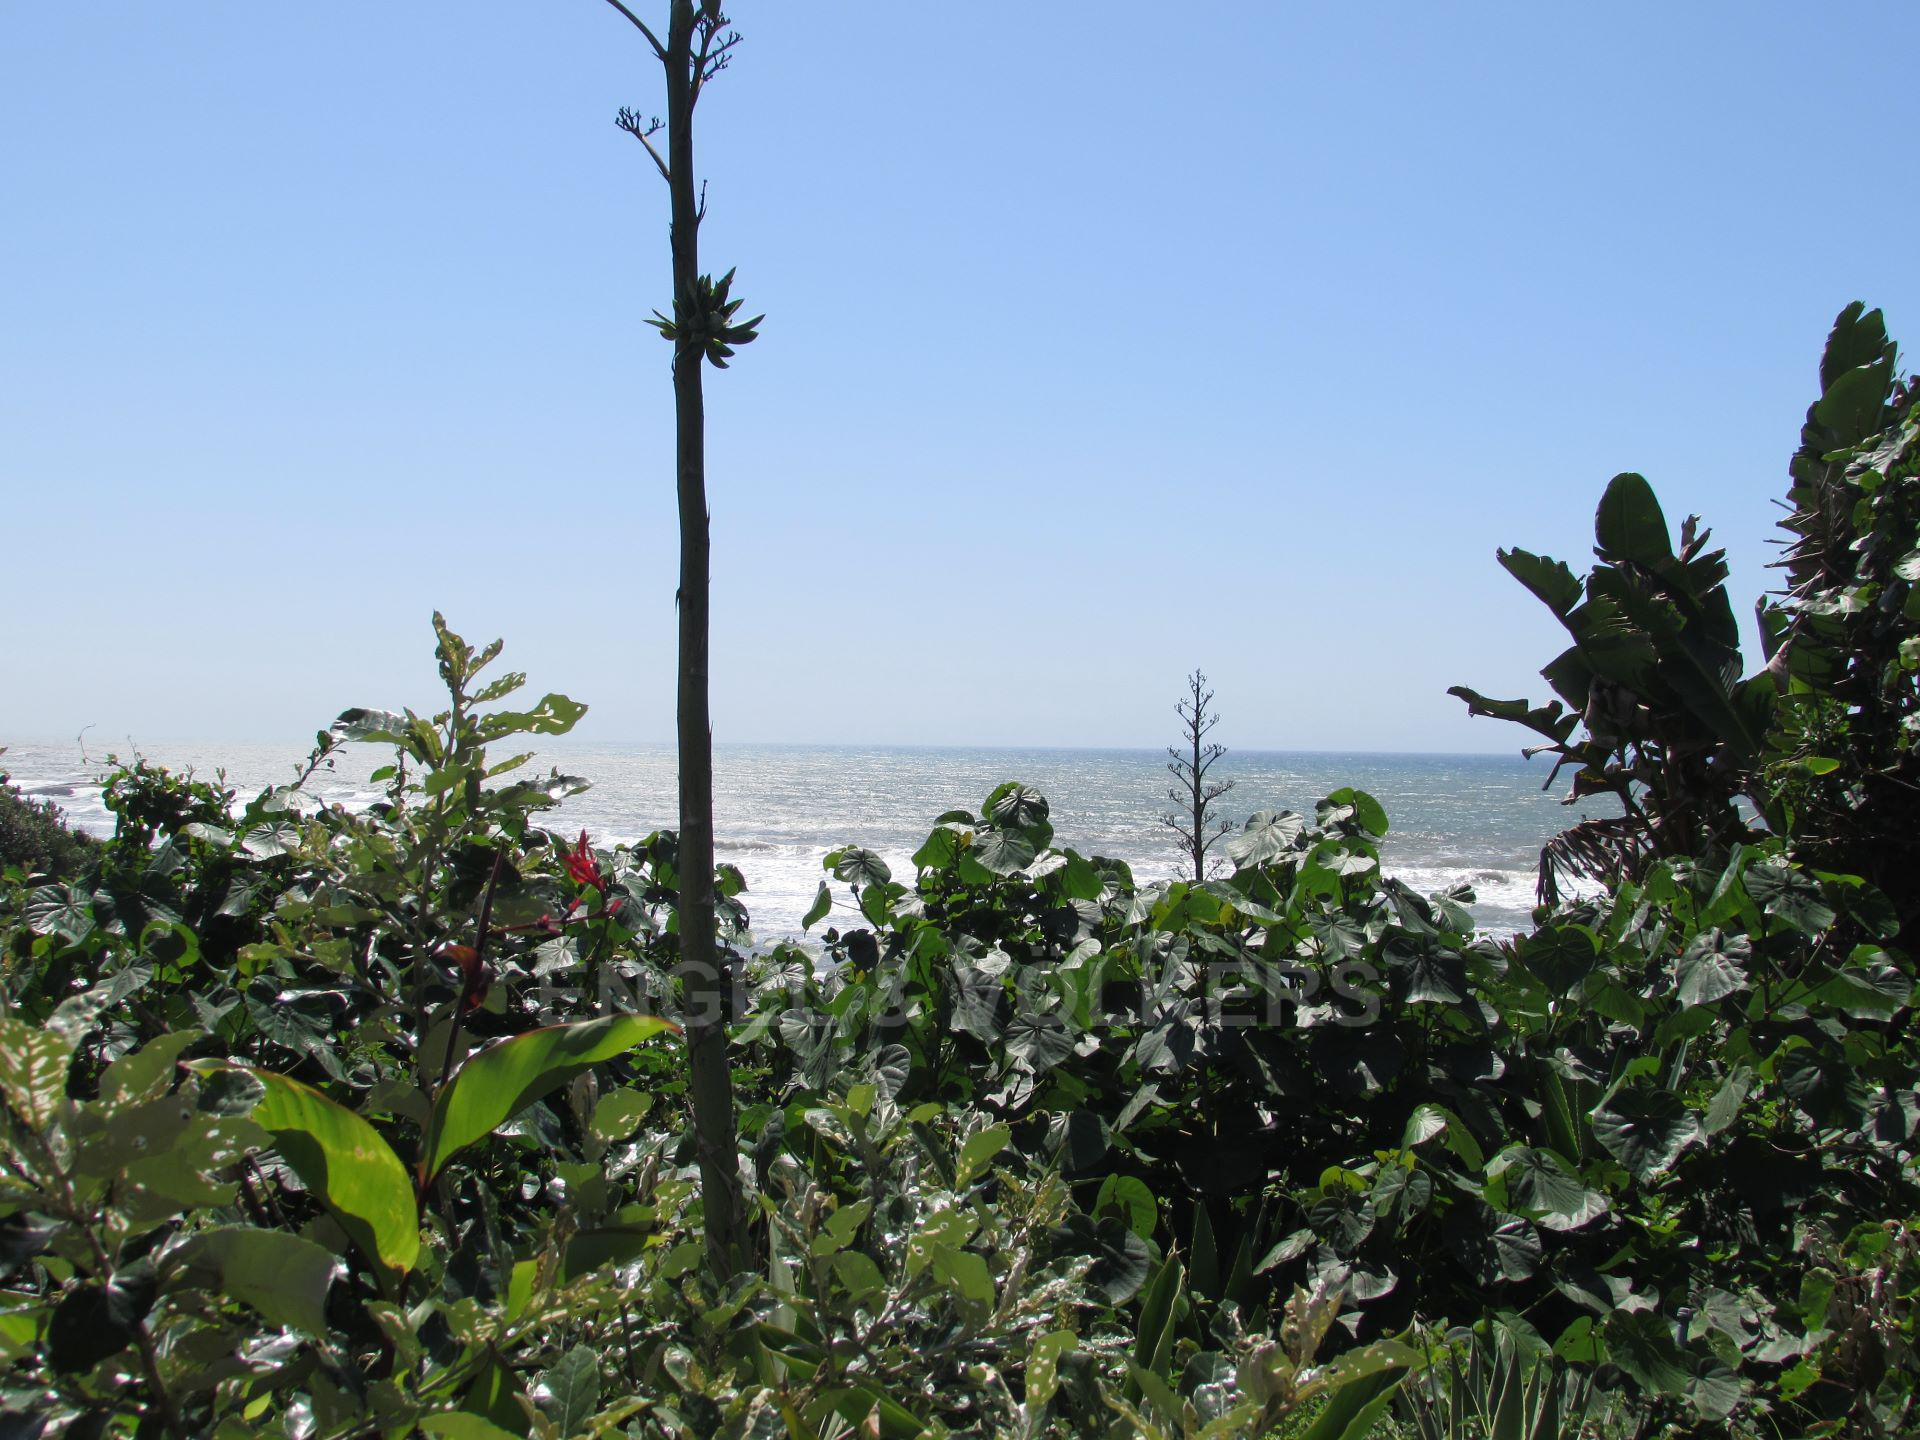 Apartment in Ramsgate - SEA VIEW FROM FRONT GARDEN.JPG